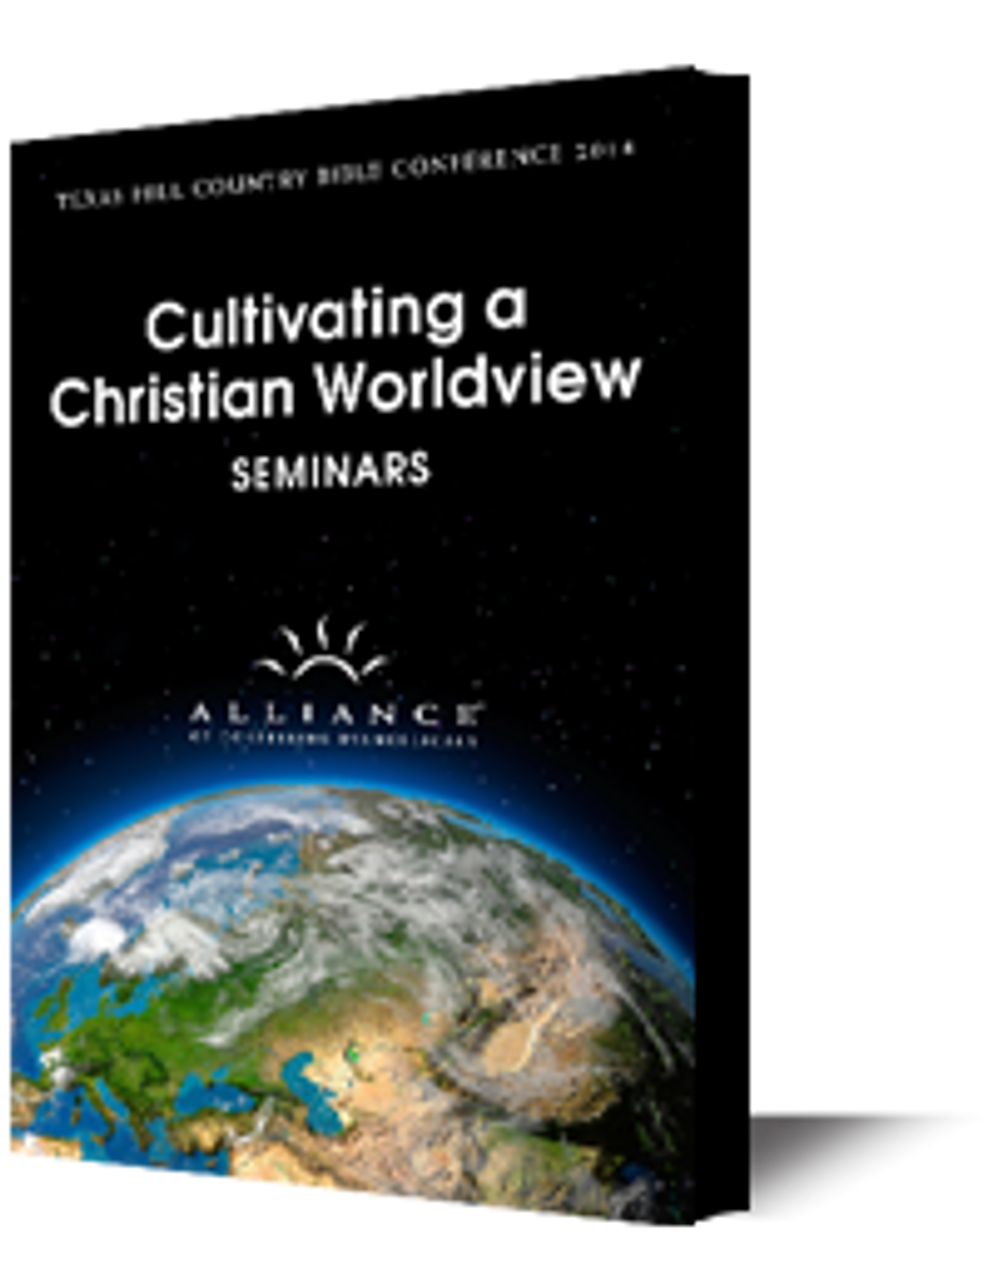 Cultivating a Christian Worldview - Seminars (mp3 Disc)